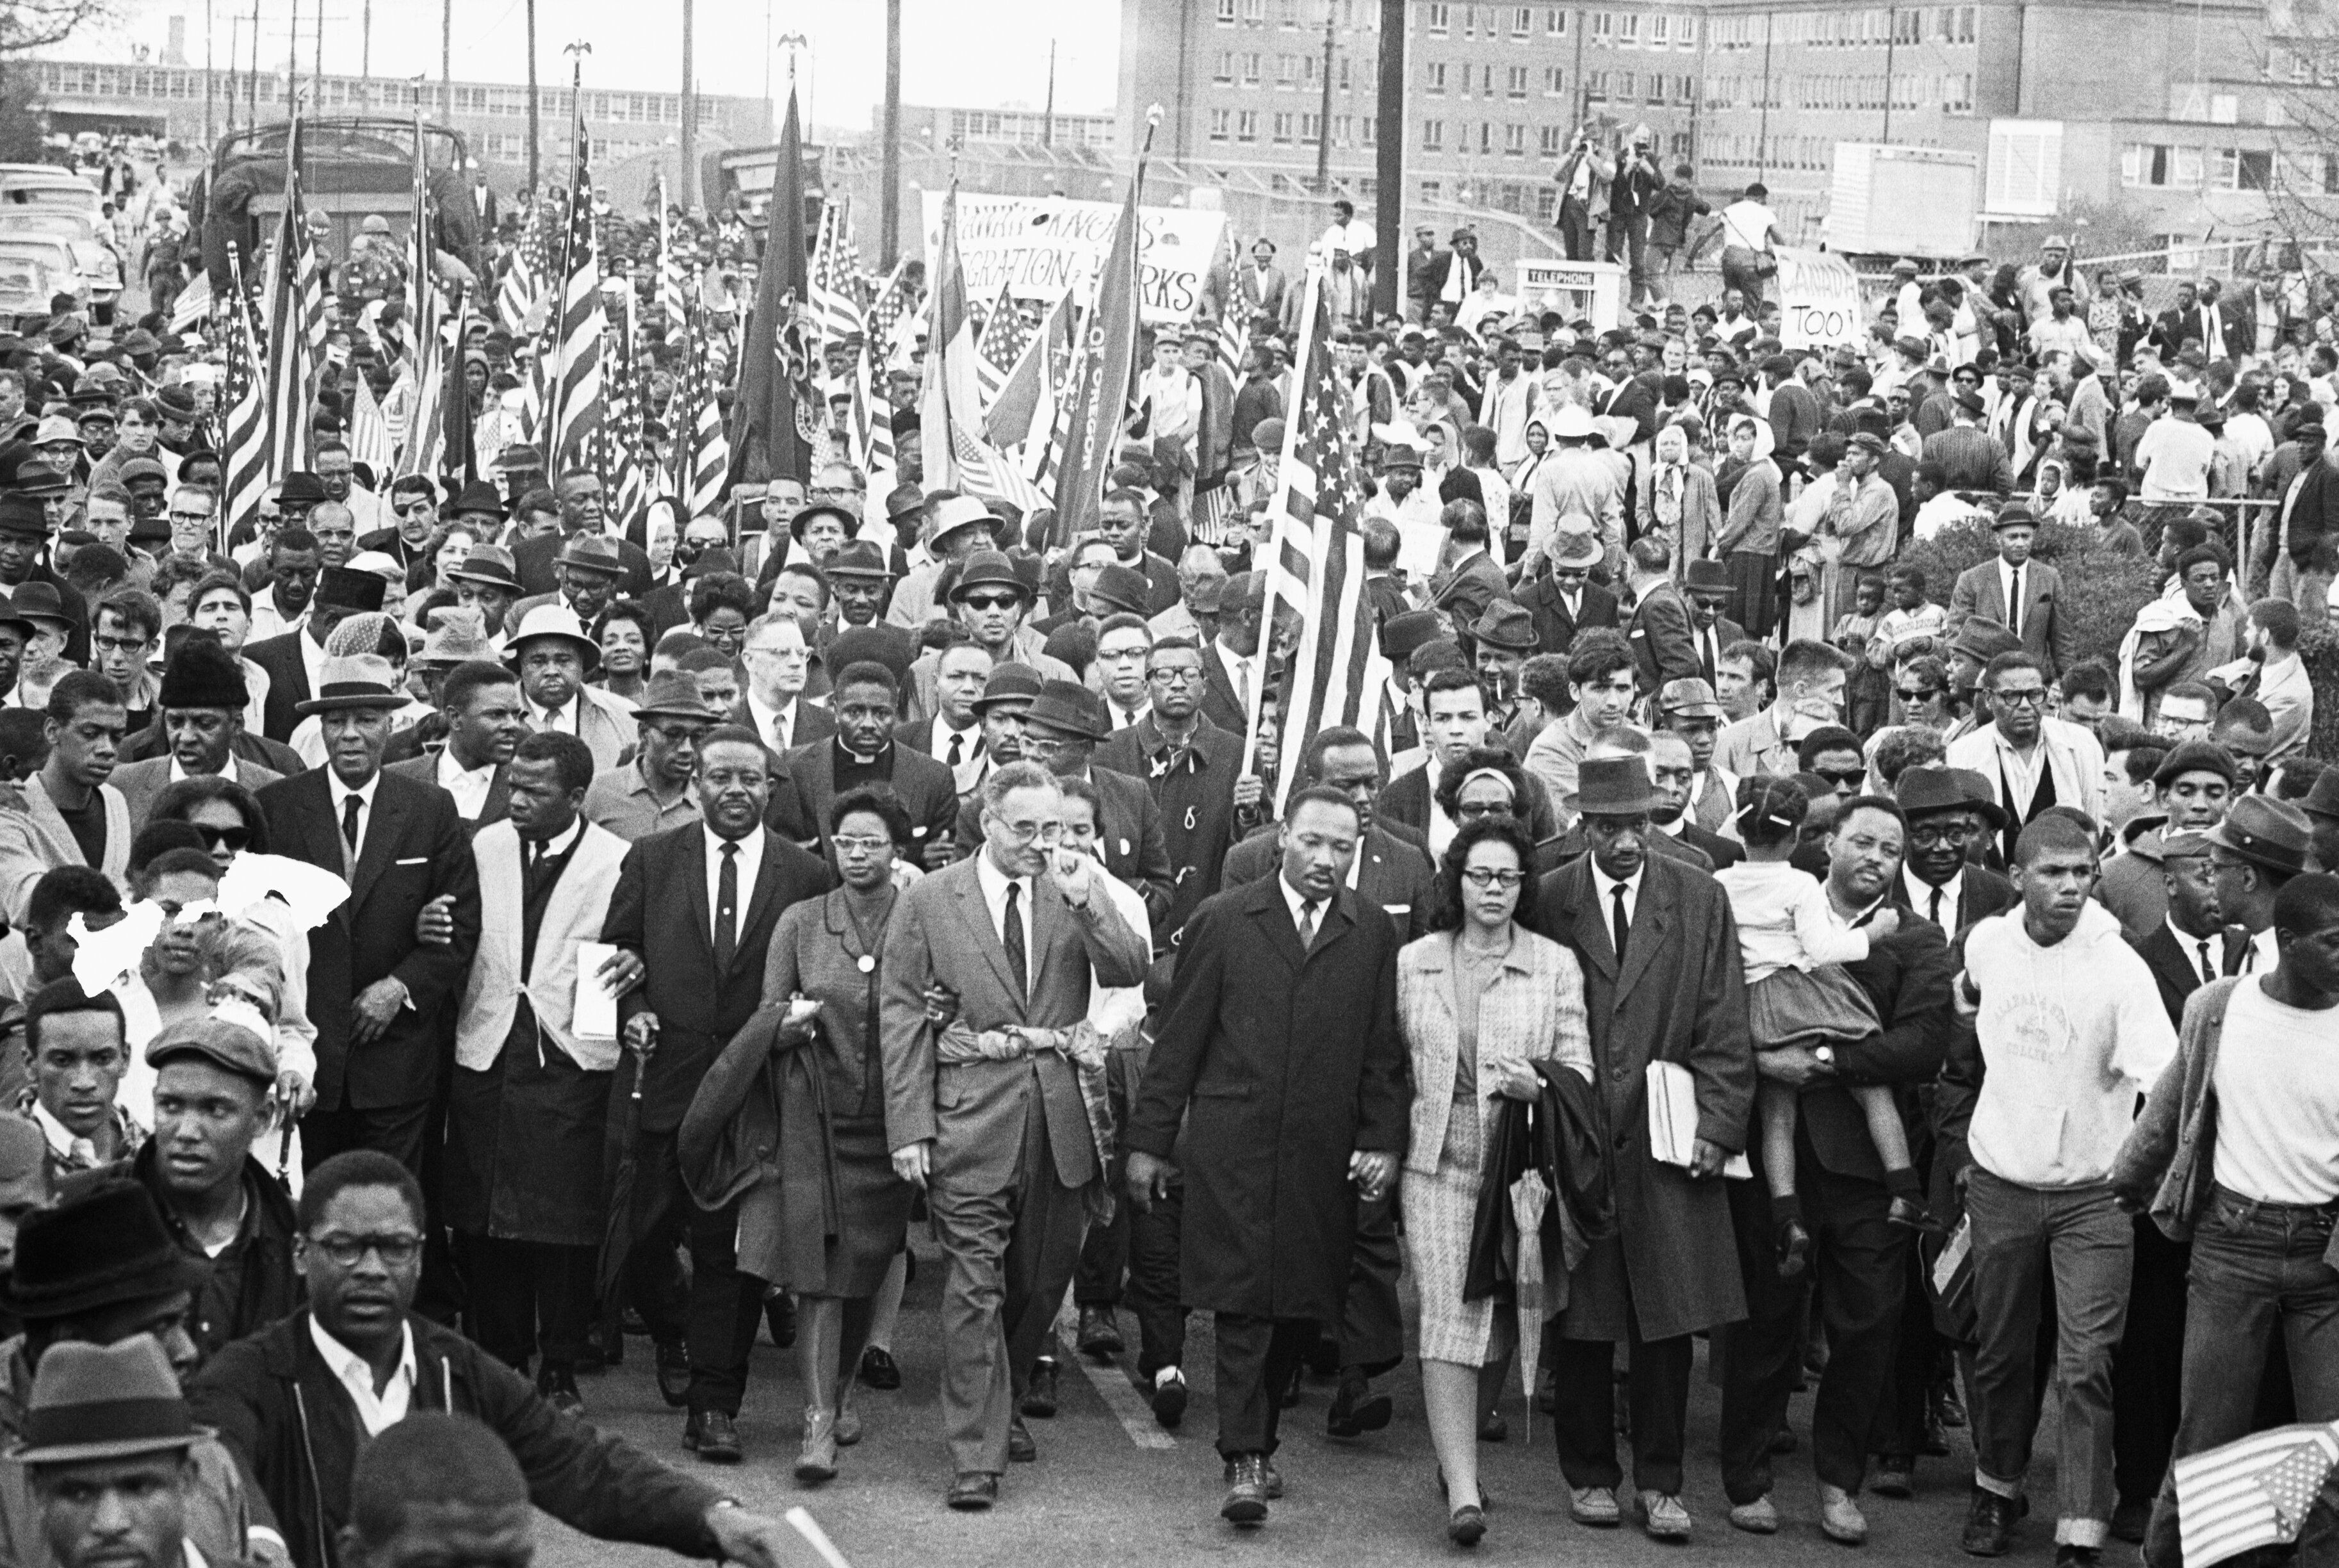 Martin Luther King Jr. with his wife, Coretta, during the Selma-to-Montgomery marches in Alabama in 1965.